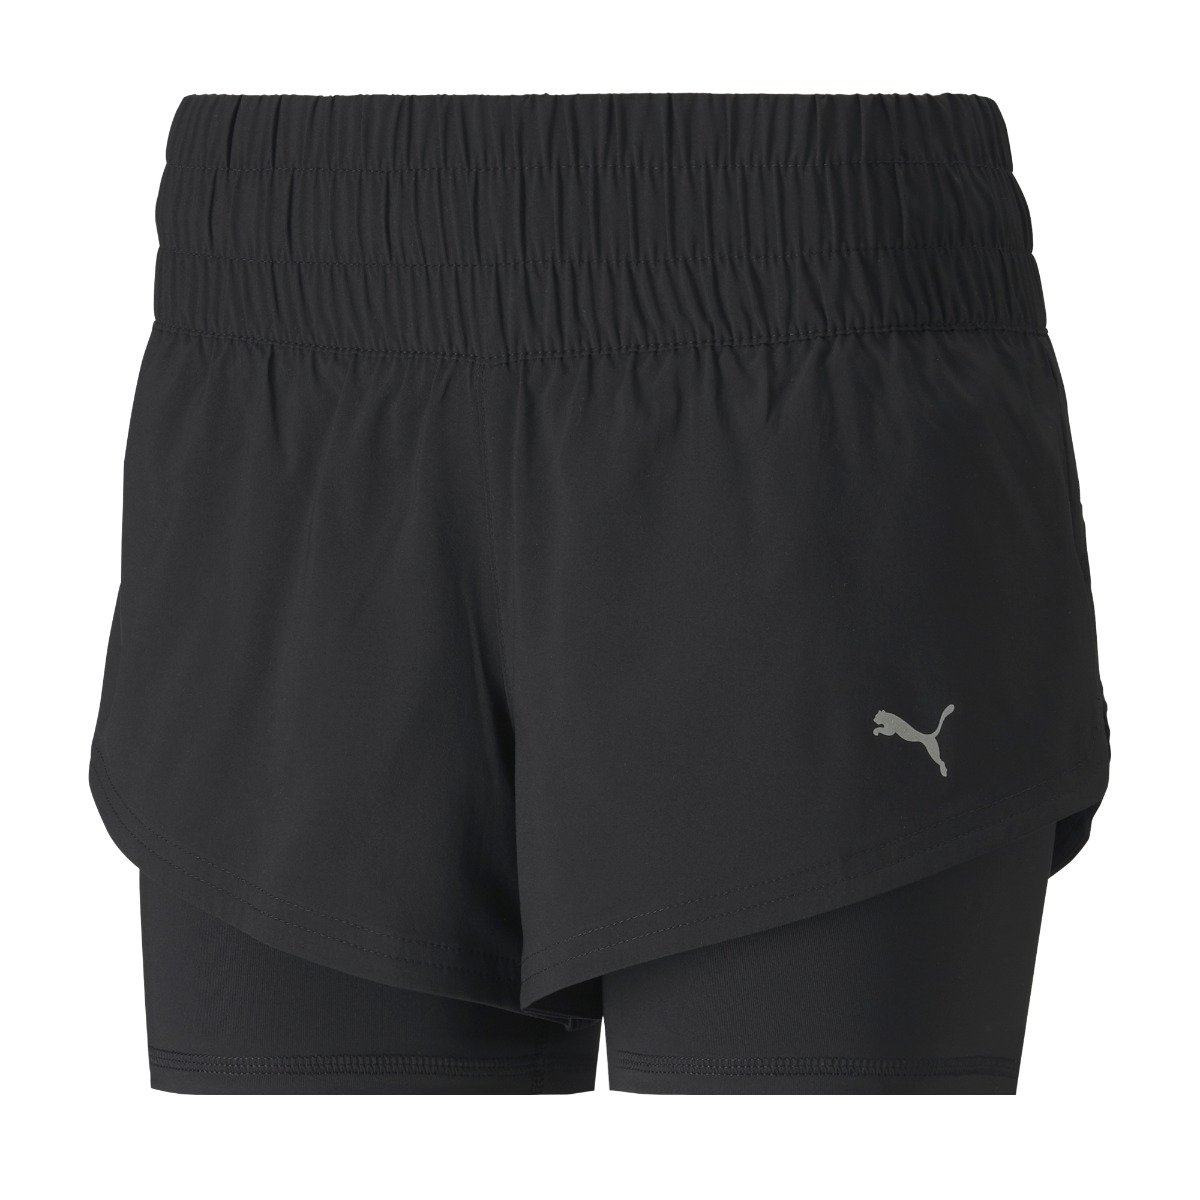 Puma Last Lap 2-in-1 Shorts dame